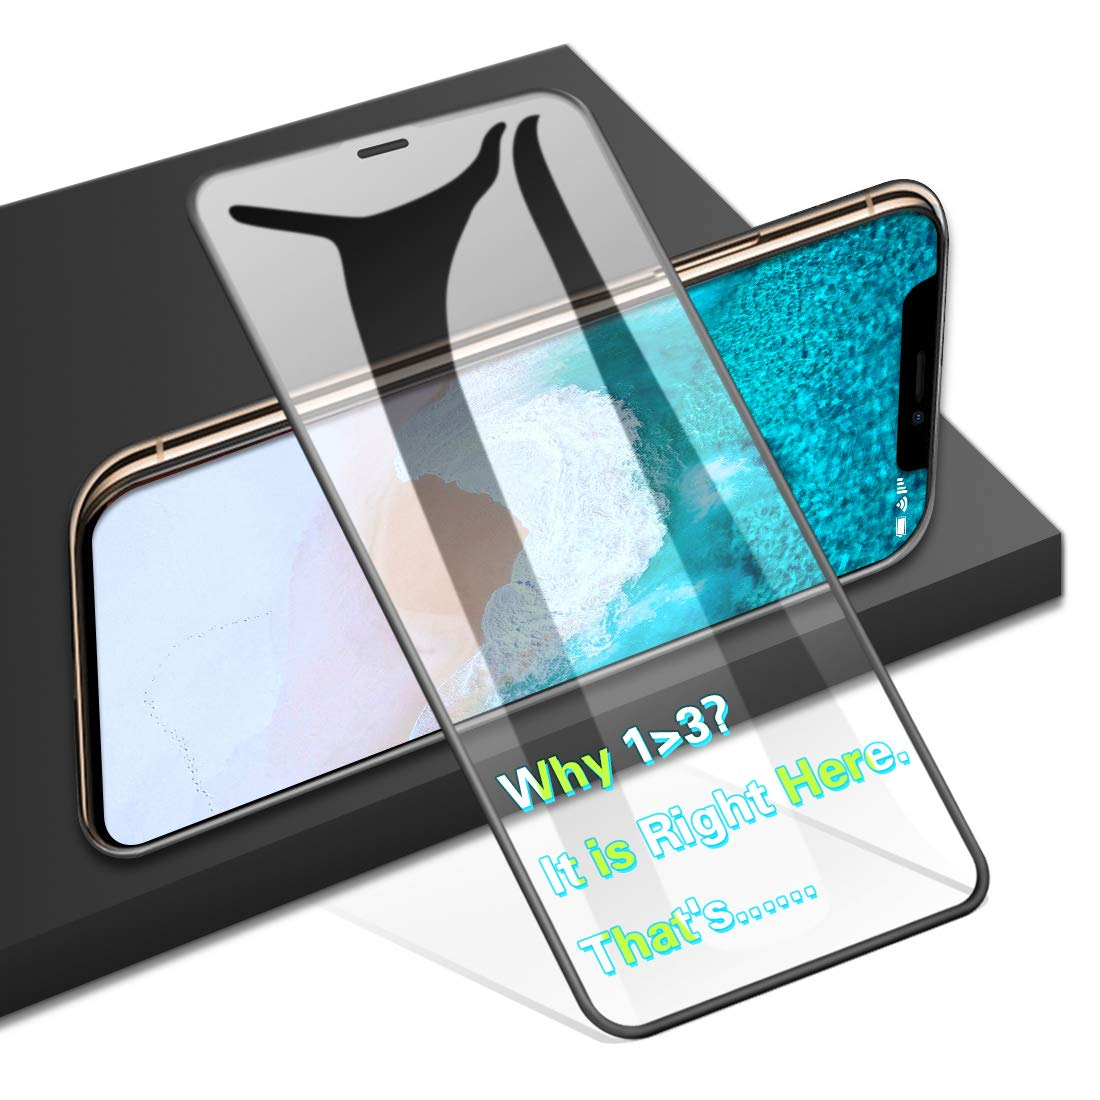 """AGVEE Full Coverage 3D Tempered Glass Screen Protector for Apple iPhone 11 Pro Max, XS-Max, Perfect Arc Fit, 9H, PC Edge Corner, i-Phone 6.5"""" (10-Plus 10s 10x 10xs max) Anti Fingerprint Saver Film"""